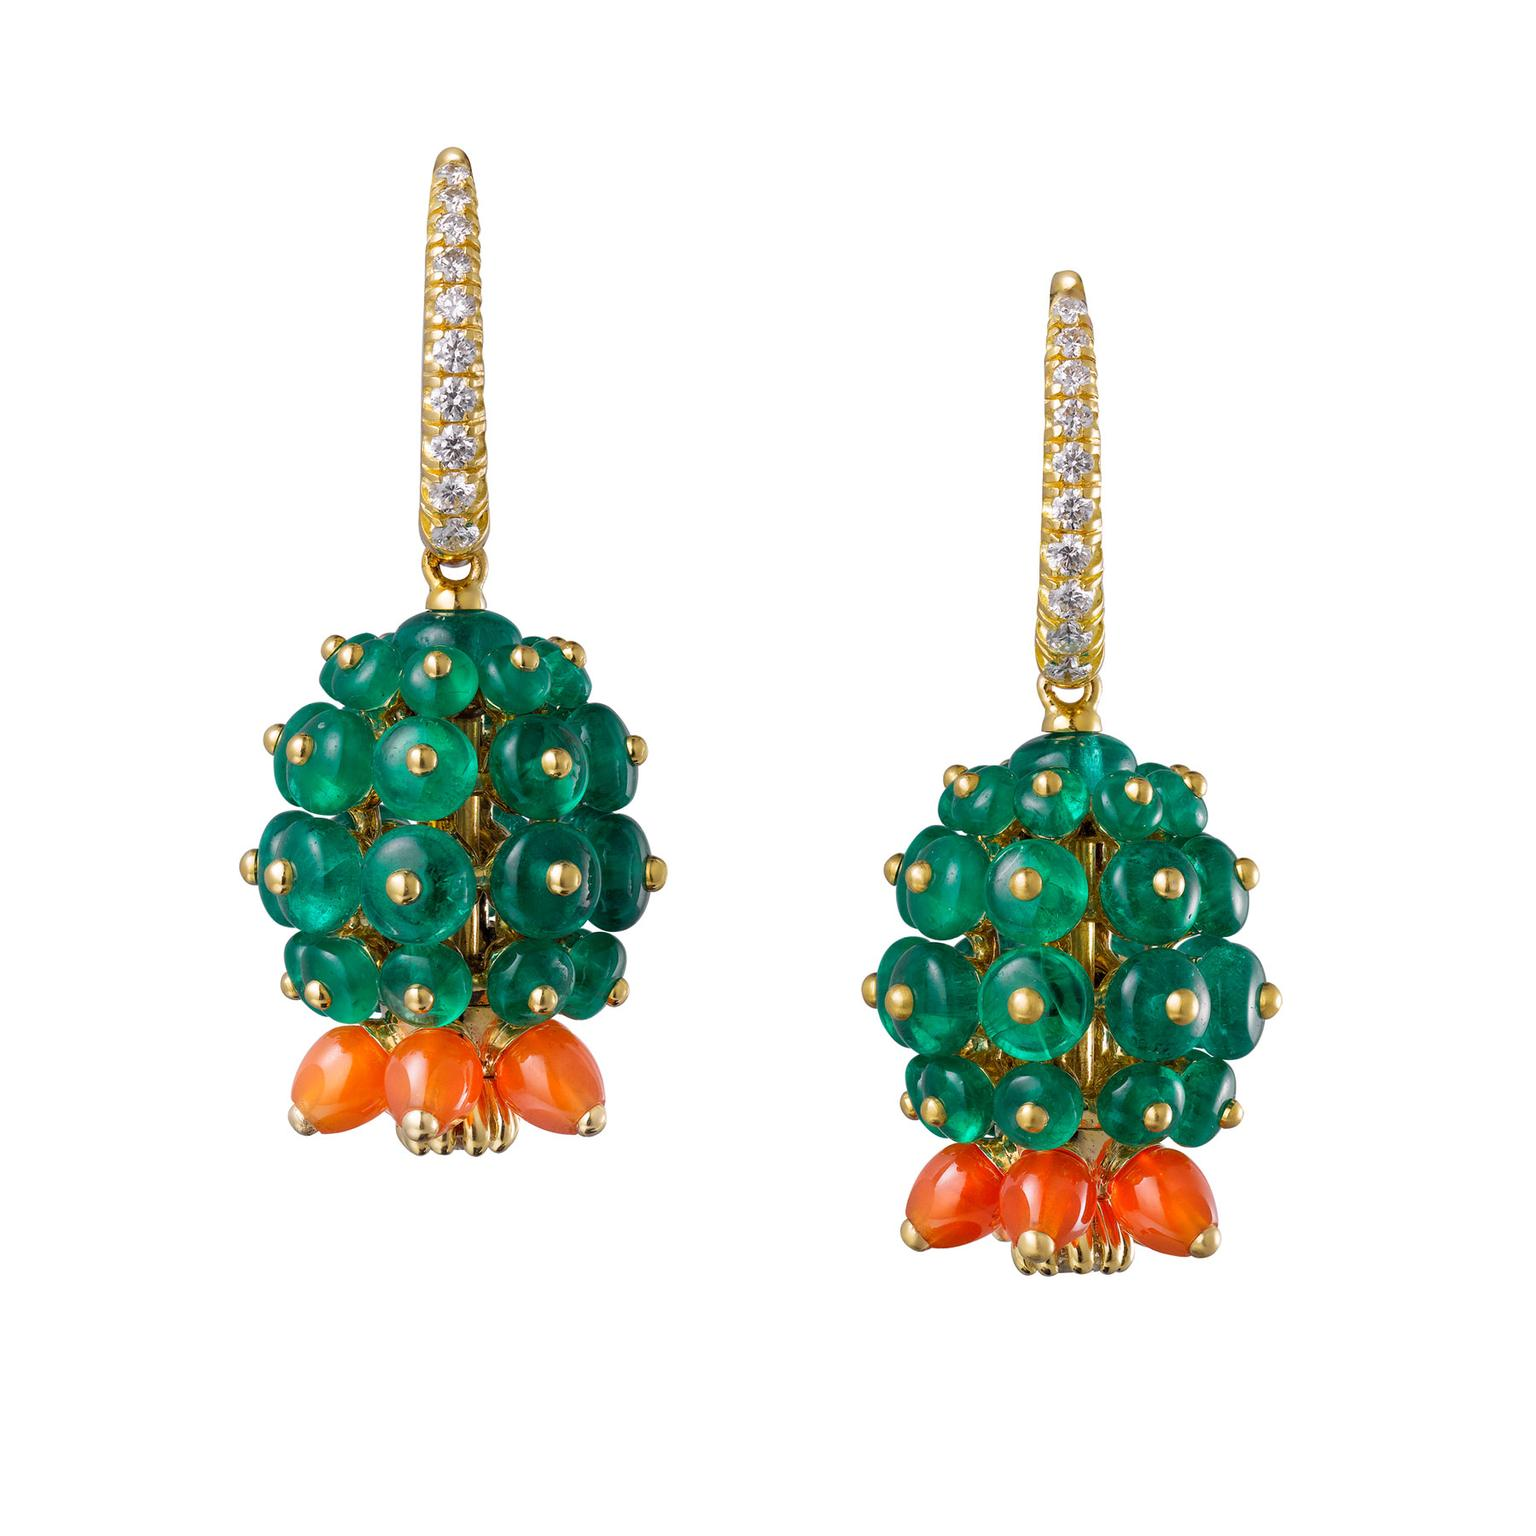 Cactus de Cartier drop earrings set with emerald and carnelian cactus beads